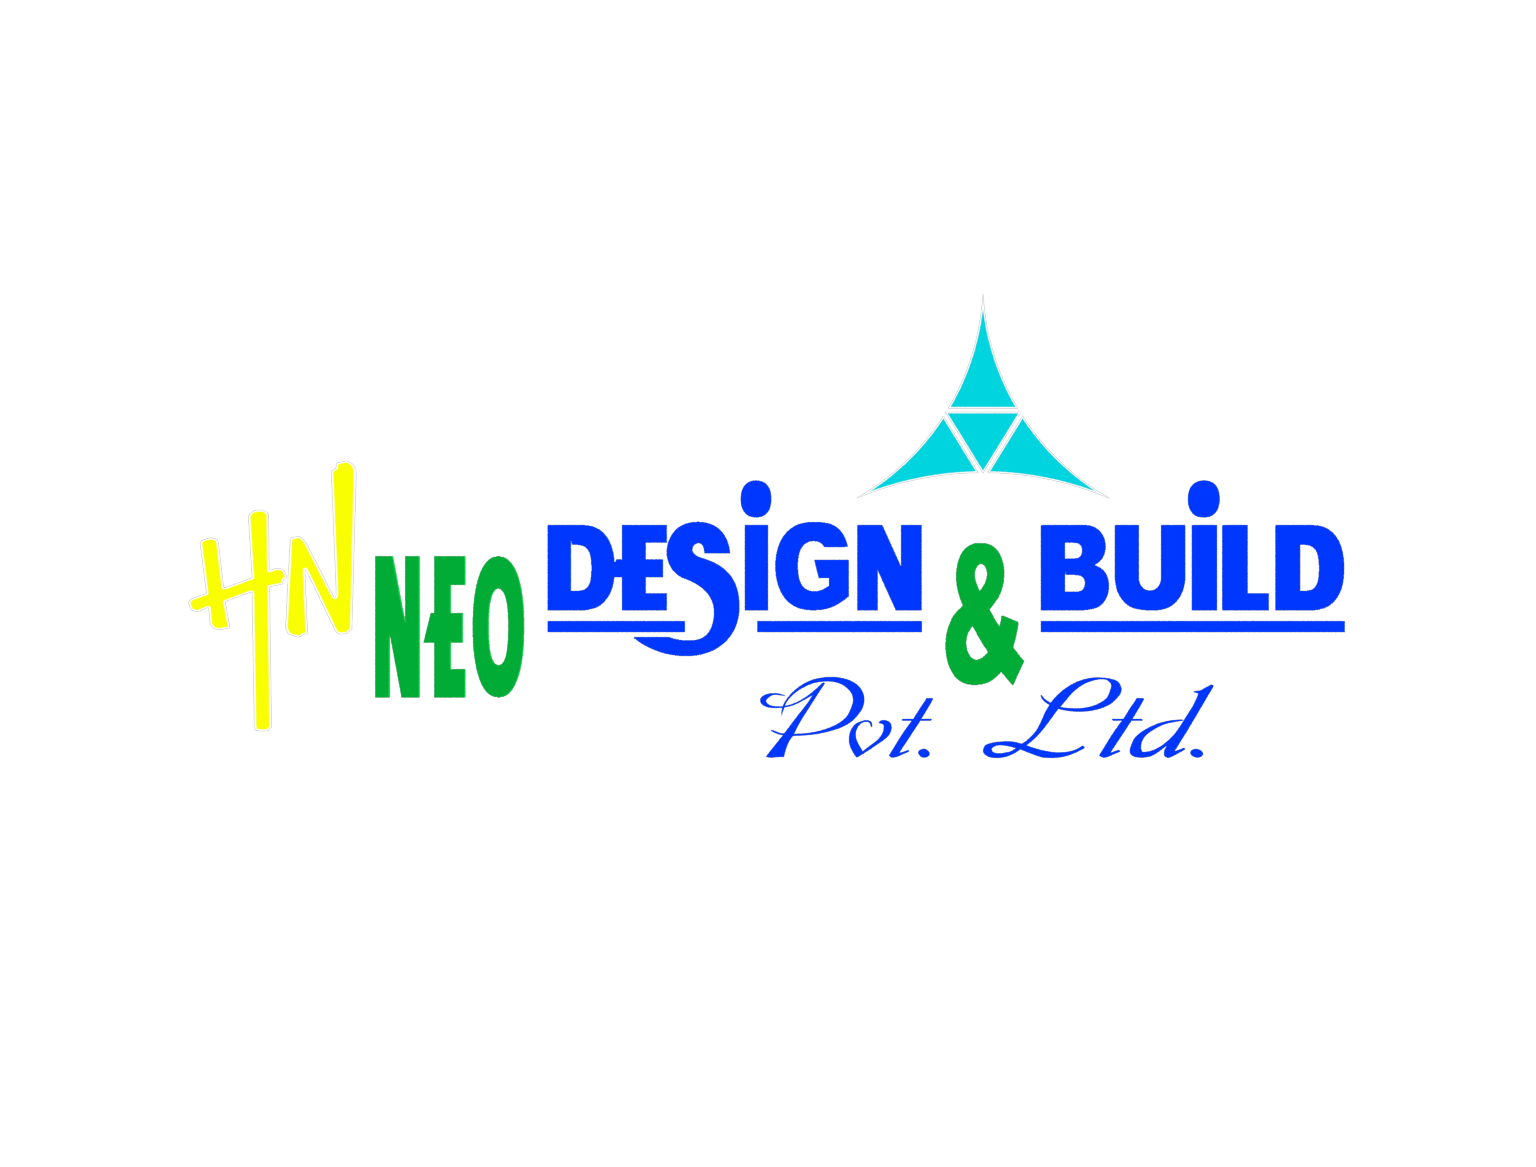 HN Neo Design & Build Pvt Ltd